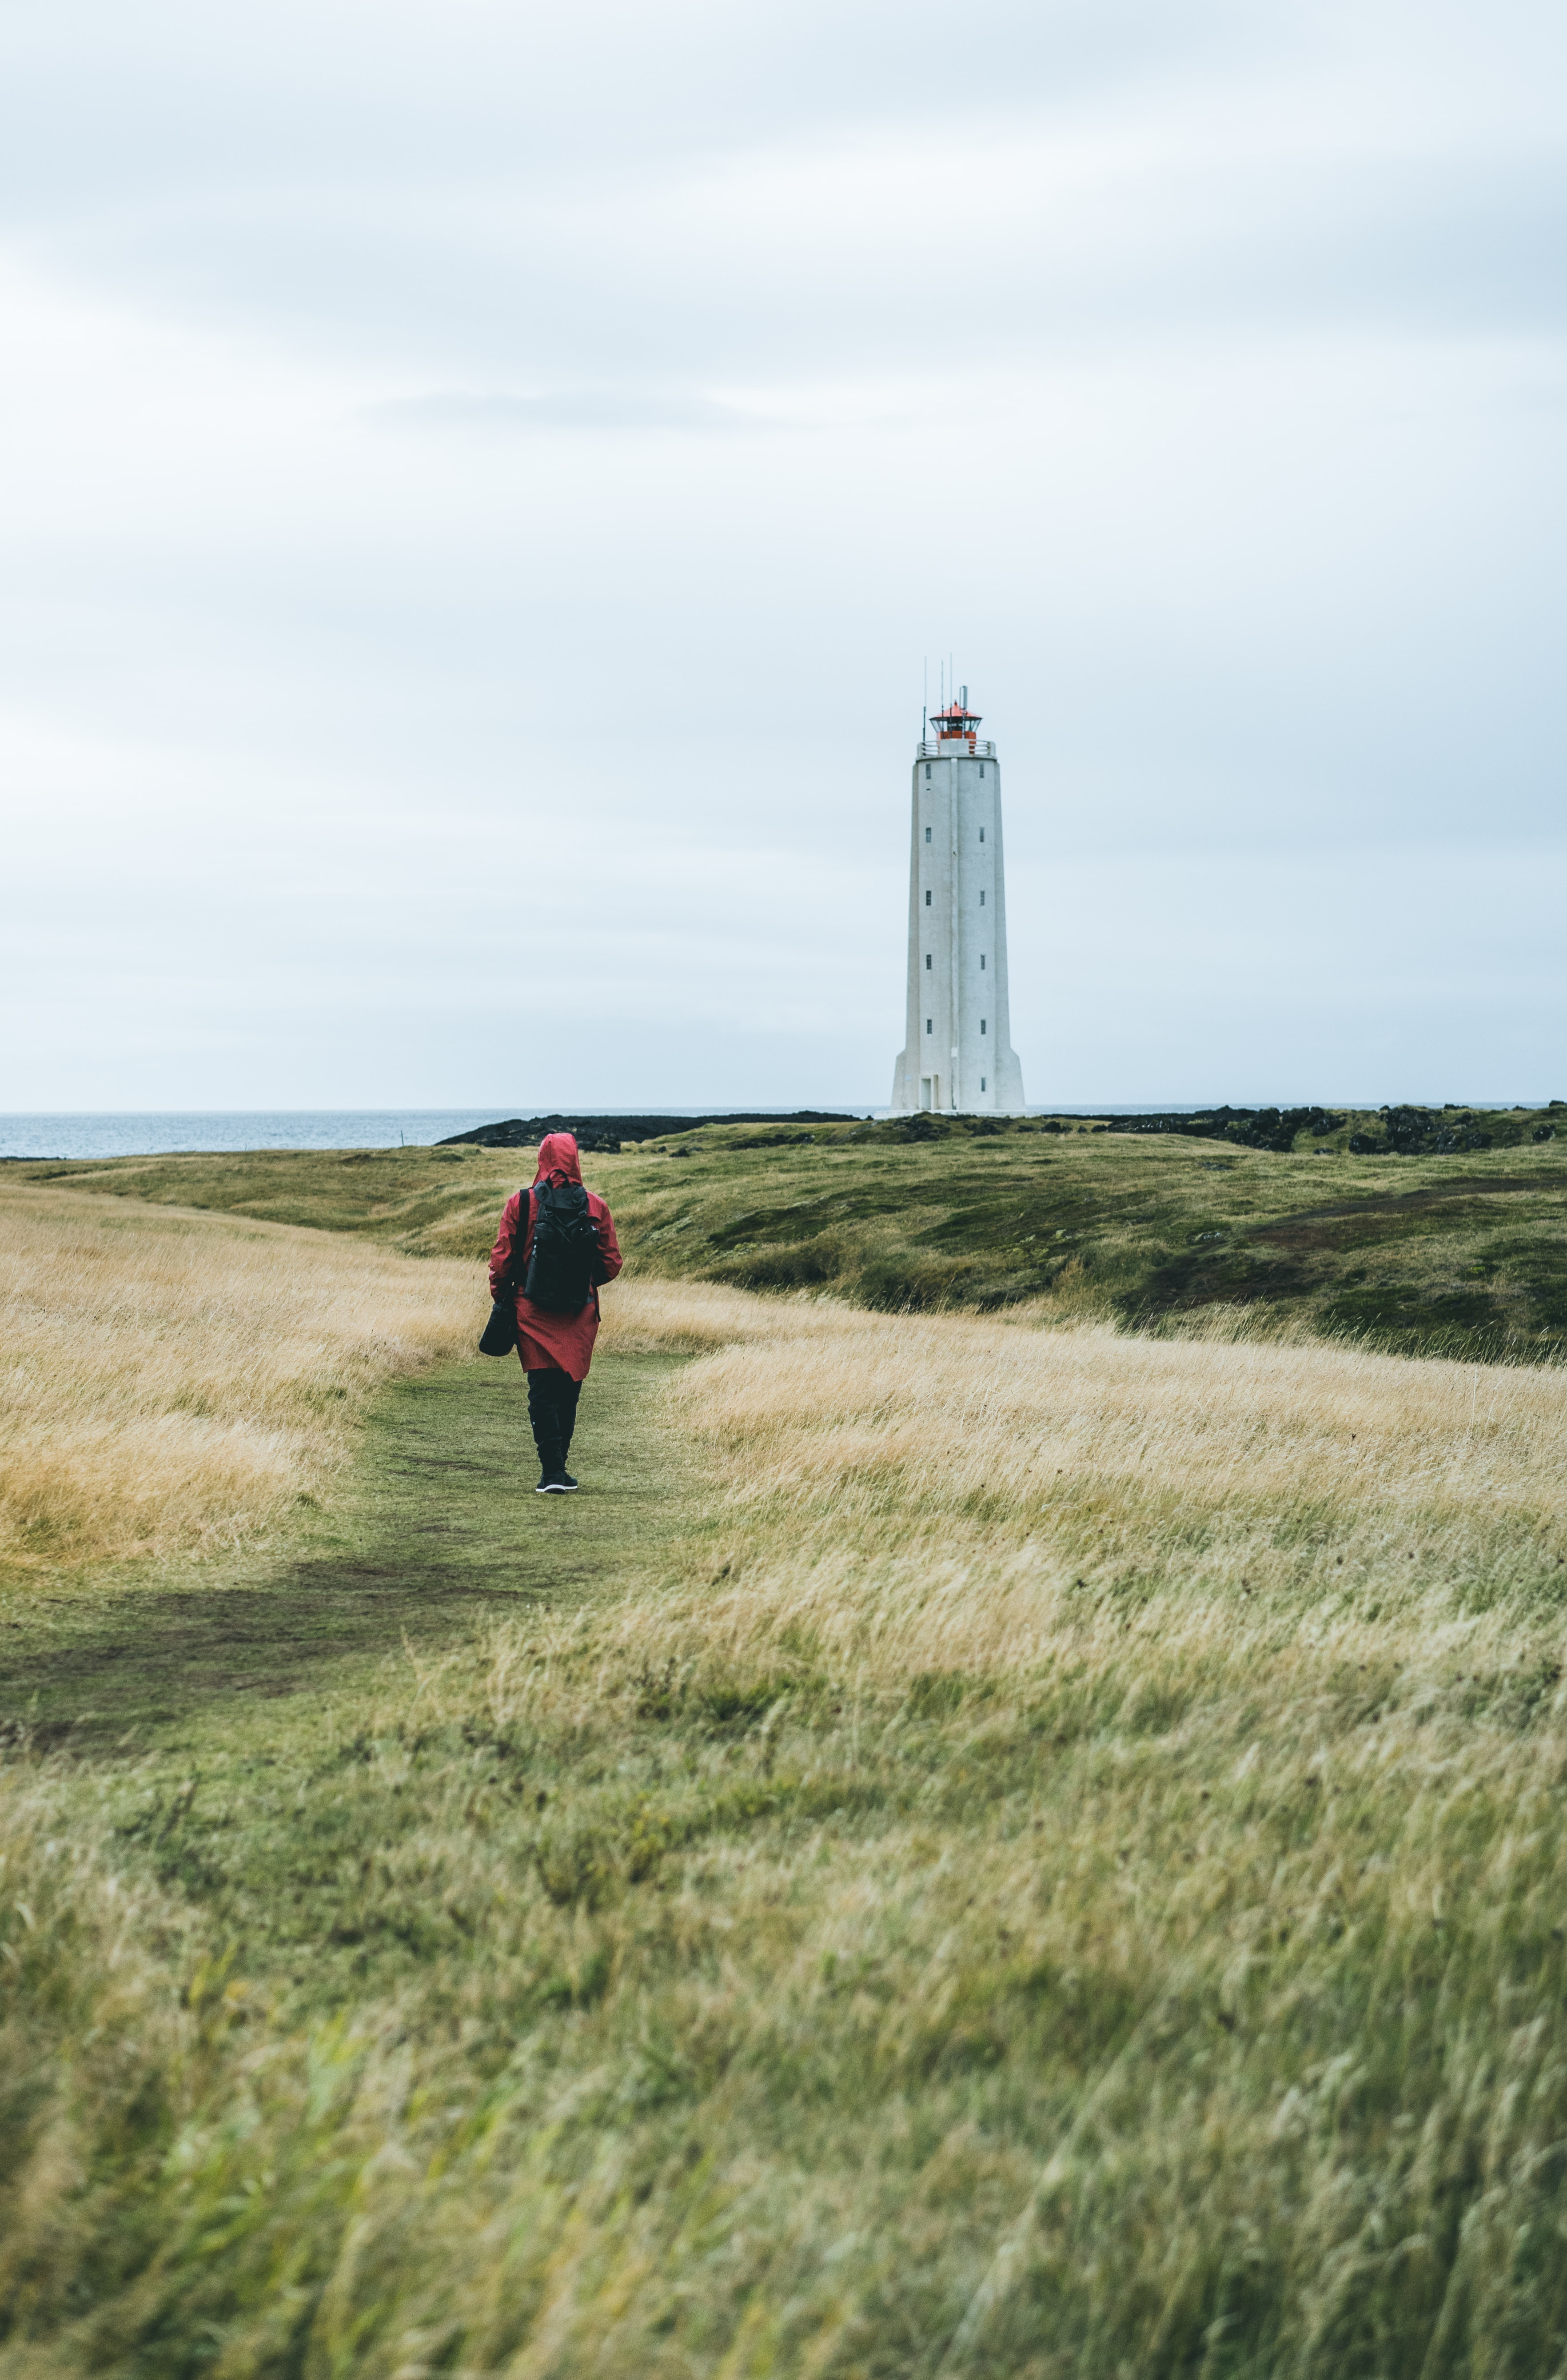 woman in red dress walks on green grass leading to white lighthouse